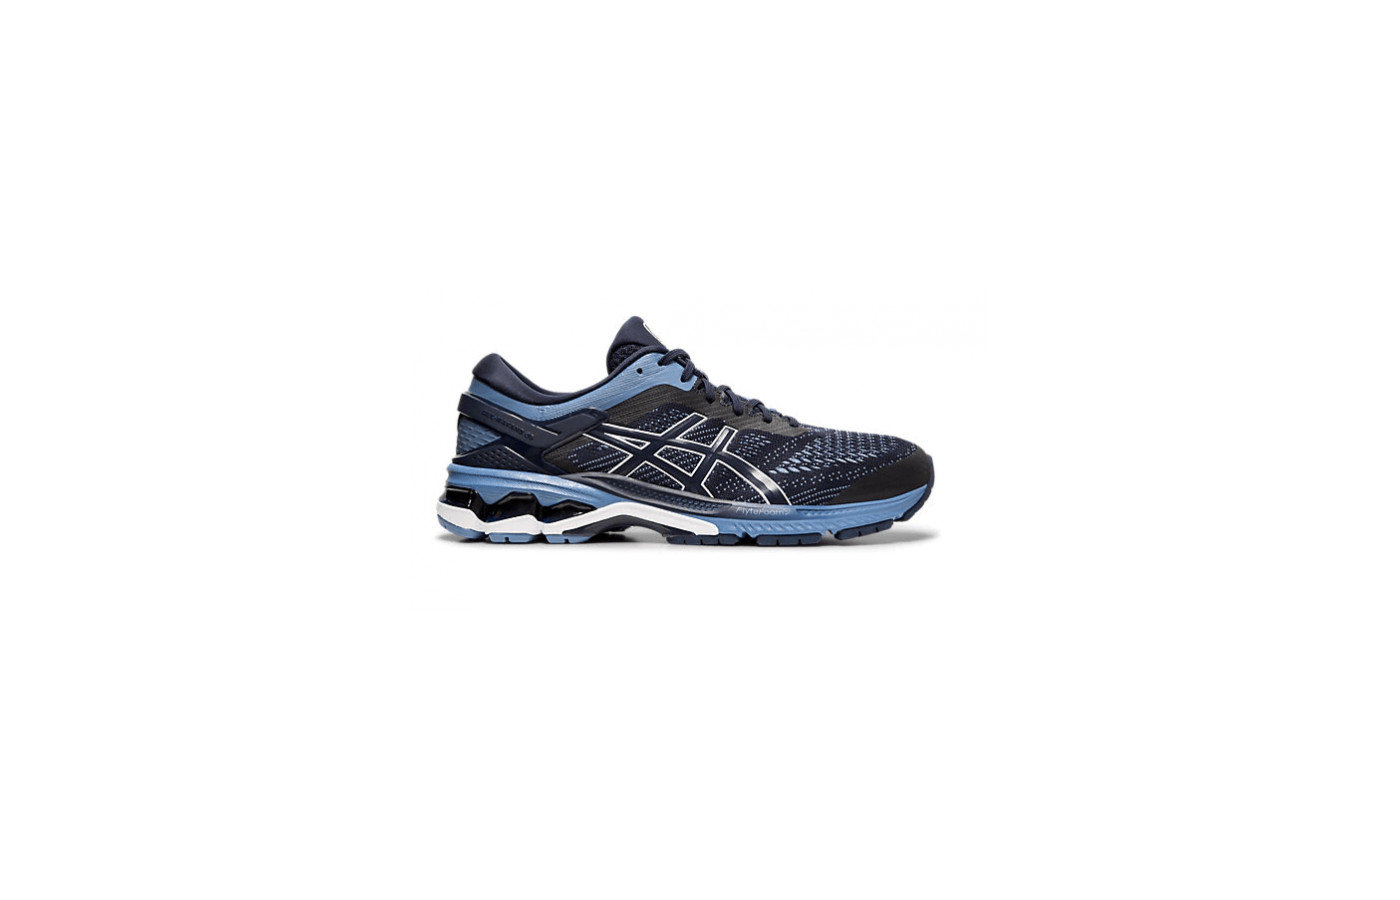 The Gel-Kayano 26 is available in multiple colorways